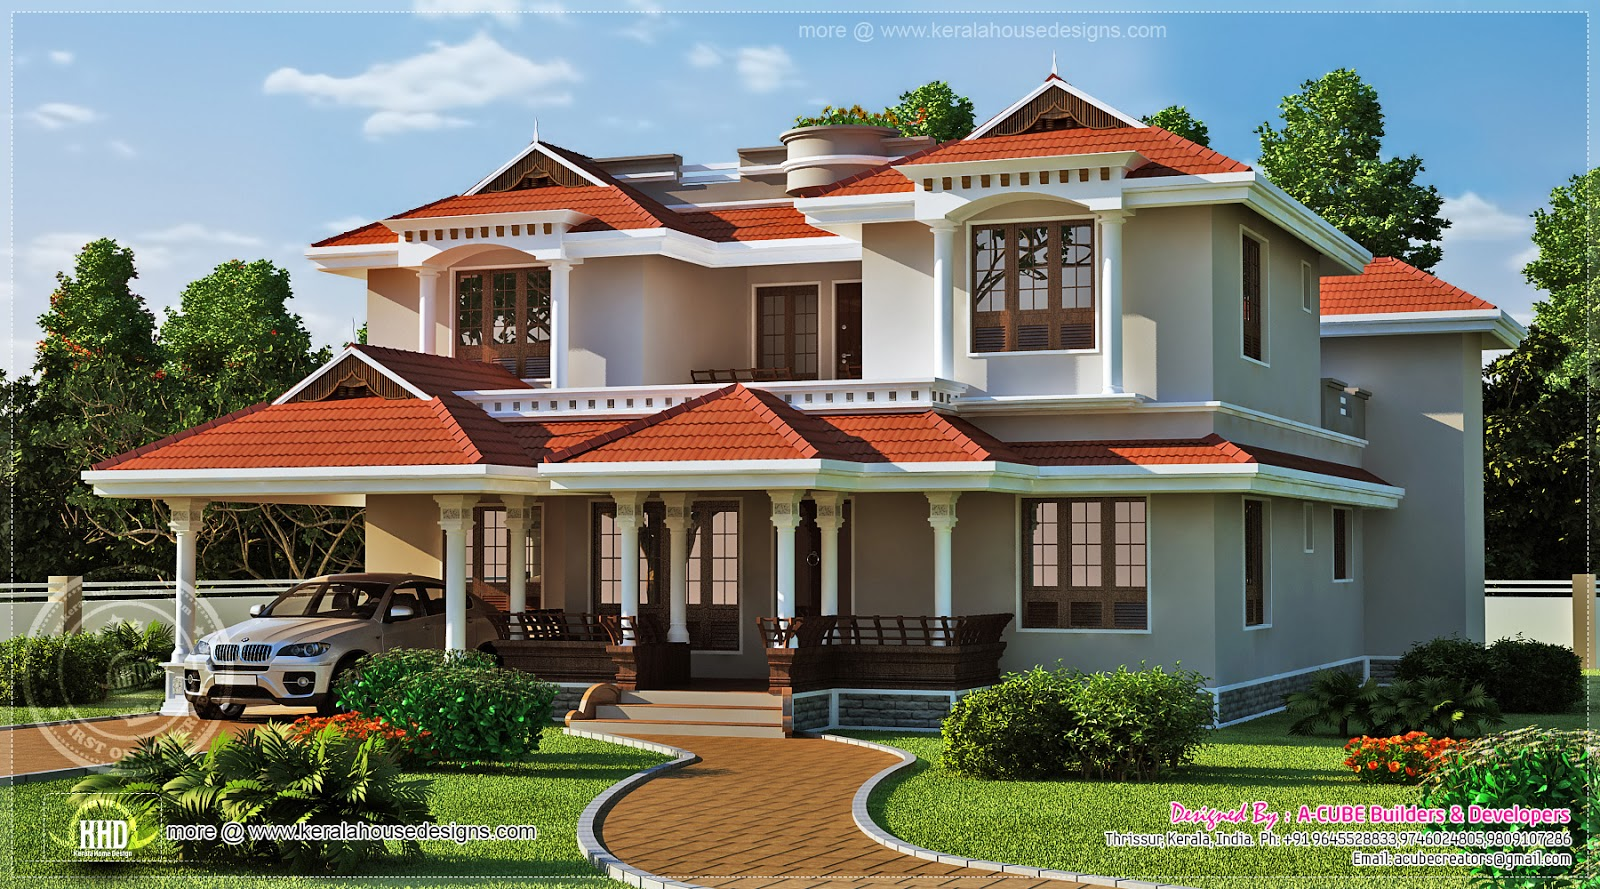 Beautiful home exterior in 2446 square feet house design for Indian home exterior designs